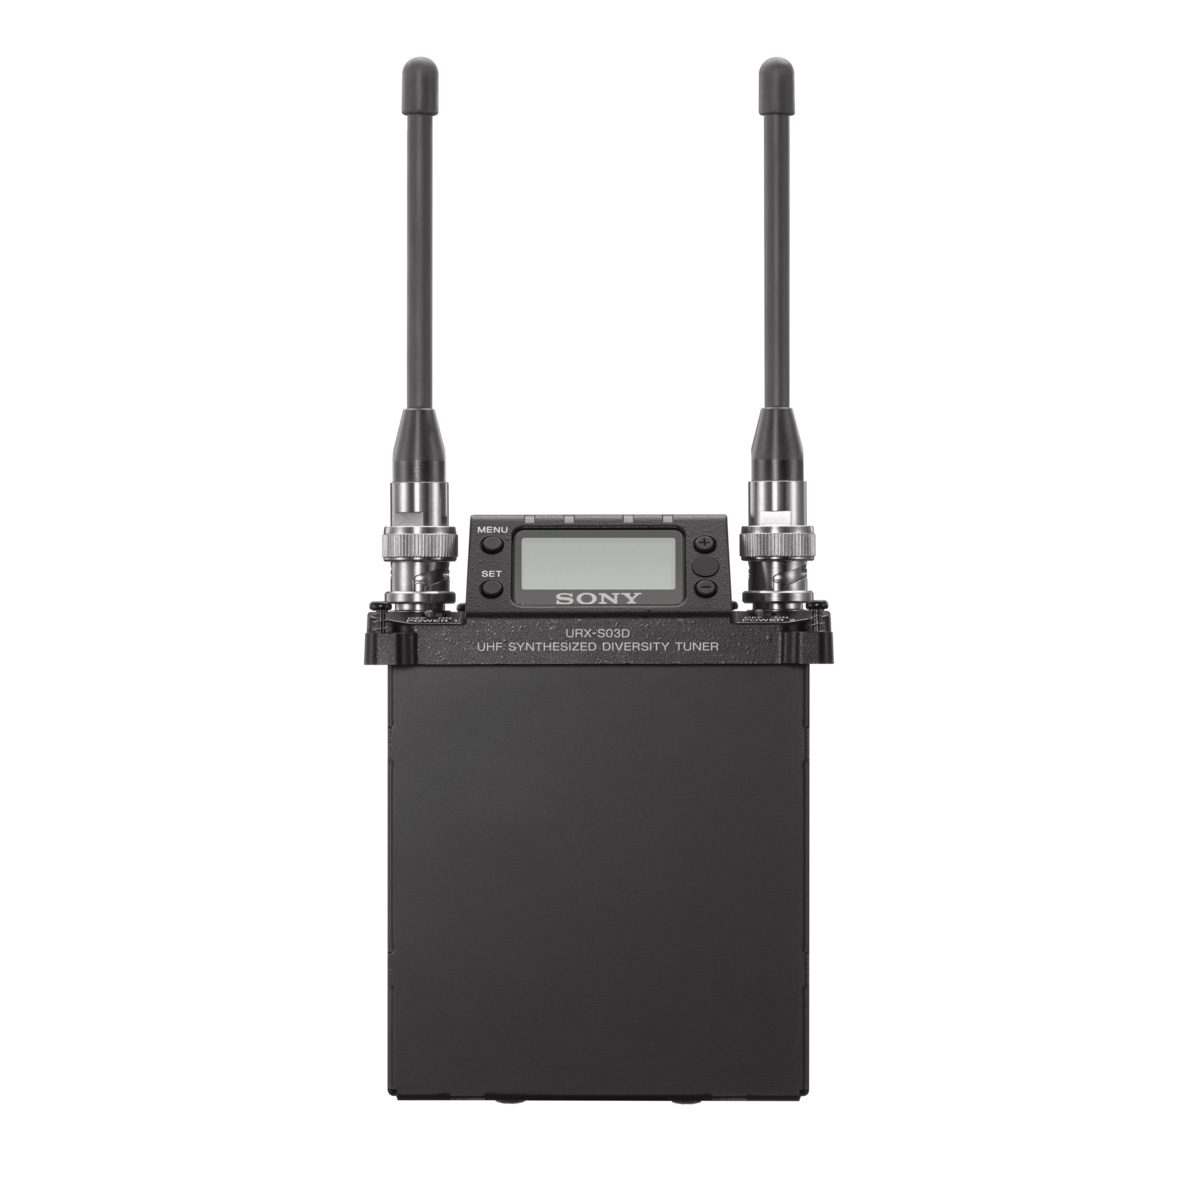 Sony Urx S03d Two Channel Slot In Wireless Receiver Microphone Circuit Dual